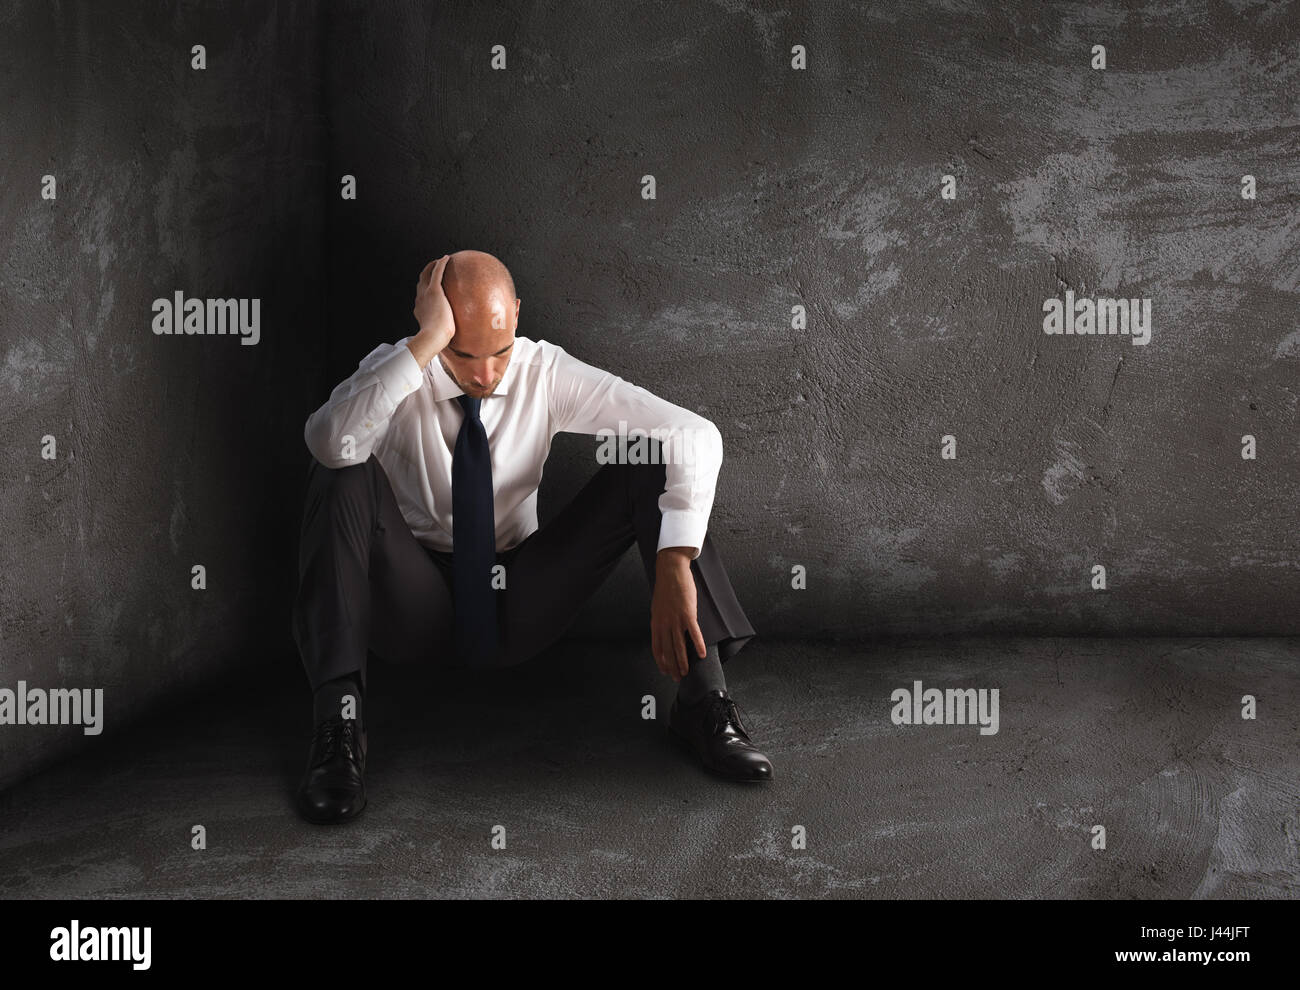 Desperate Man High Resolution Stock Photography And Images Alamy 67 anime images in gallery. https www alamy com stock photo alone desperate businessman solitude and failure concept 140243932 html